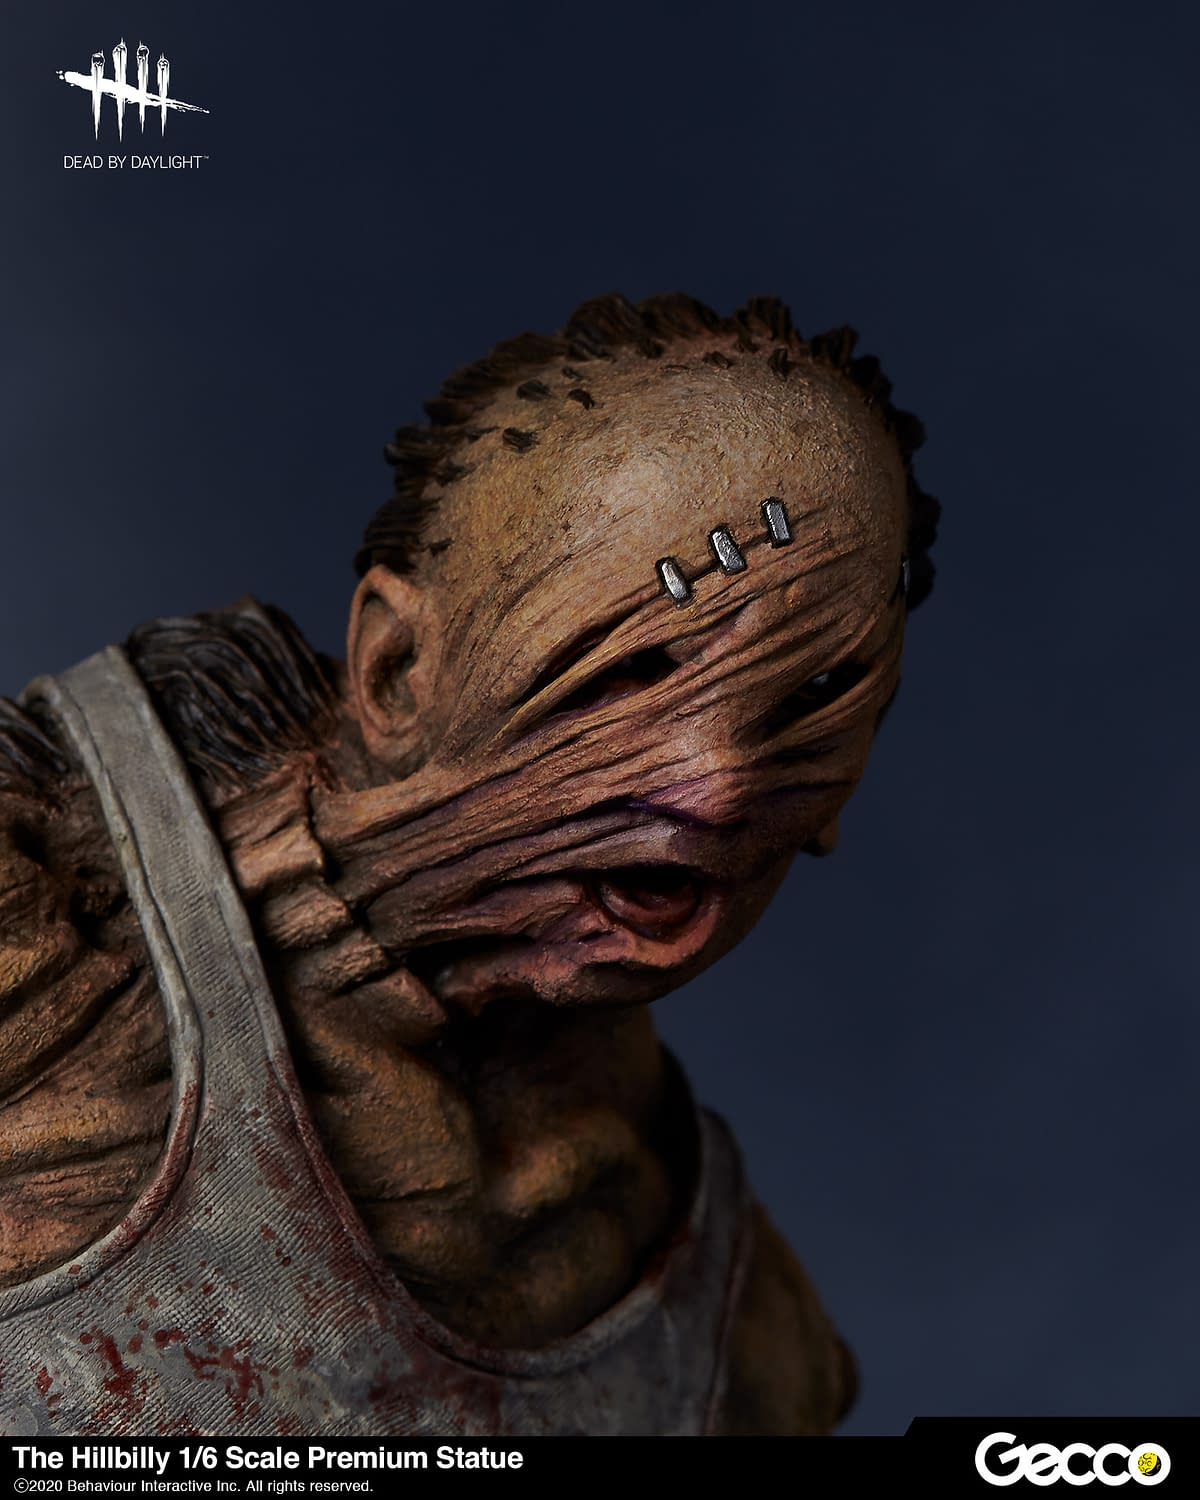 Gecco-Dead-by-Daylight-Hillbilly-Statue-012